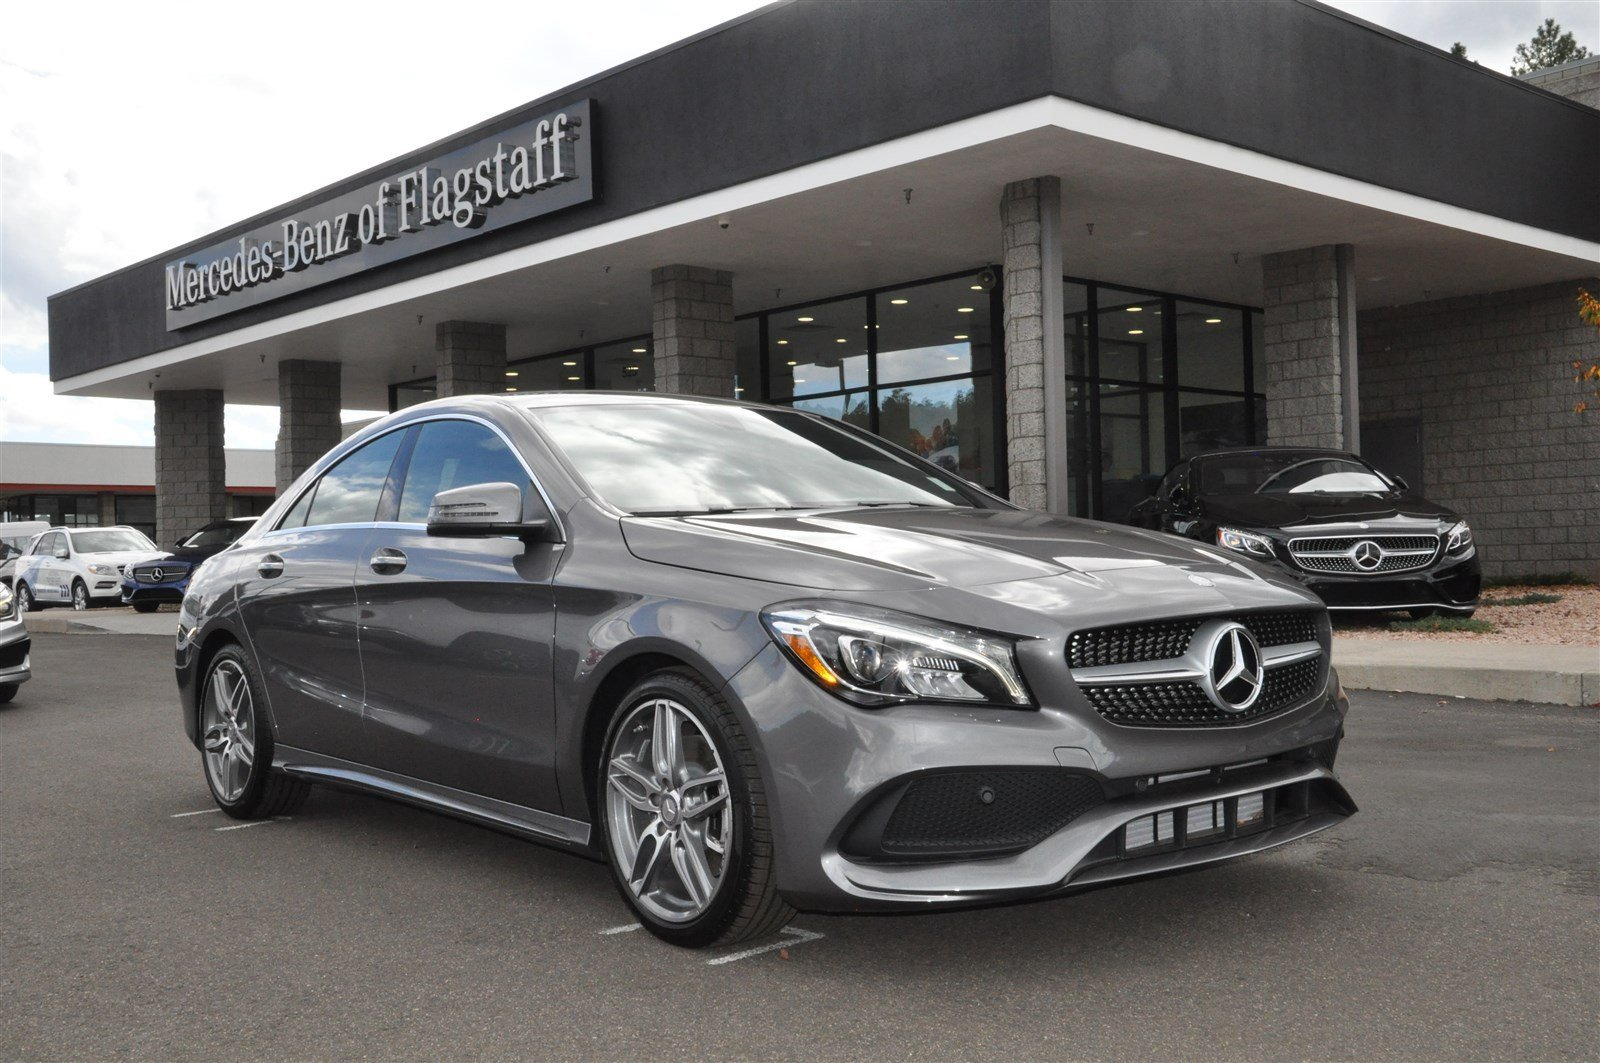 New 2017 mercedes benz cla cla 250 coupe in flagstaff for Mercedes benz cla 250 msrp